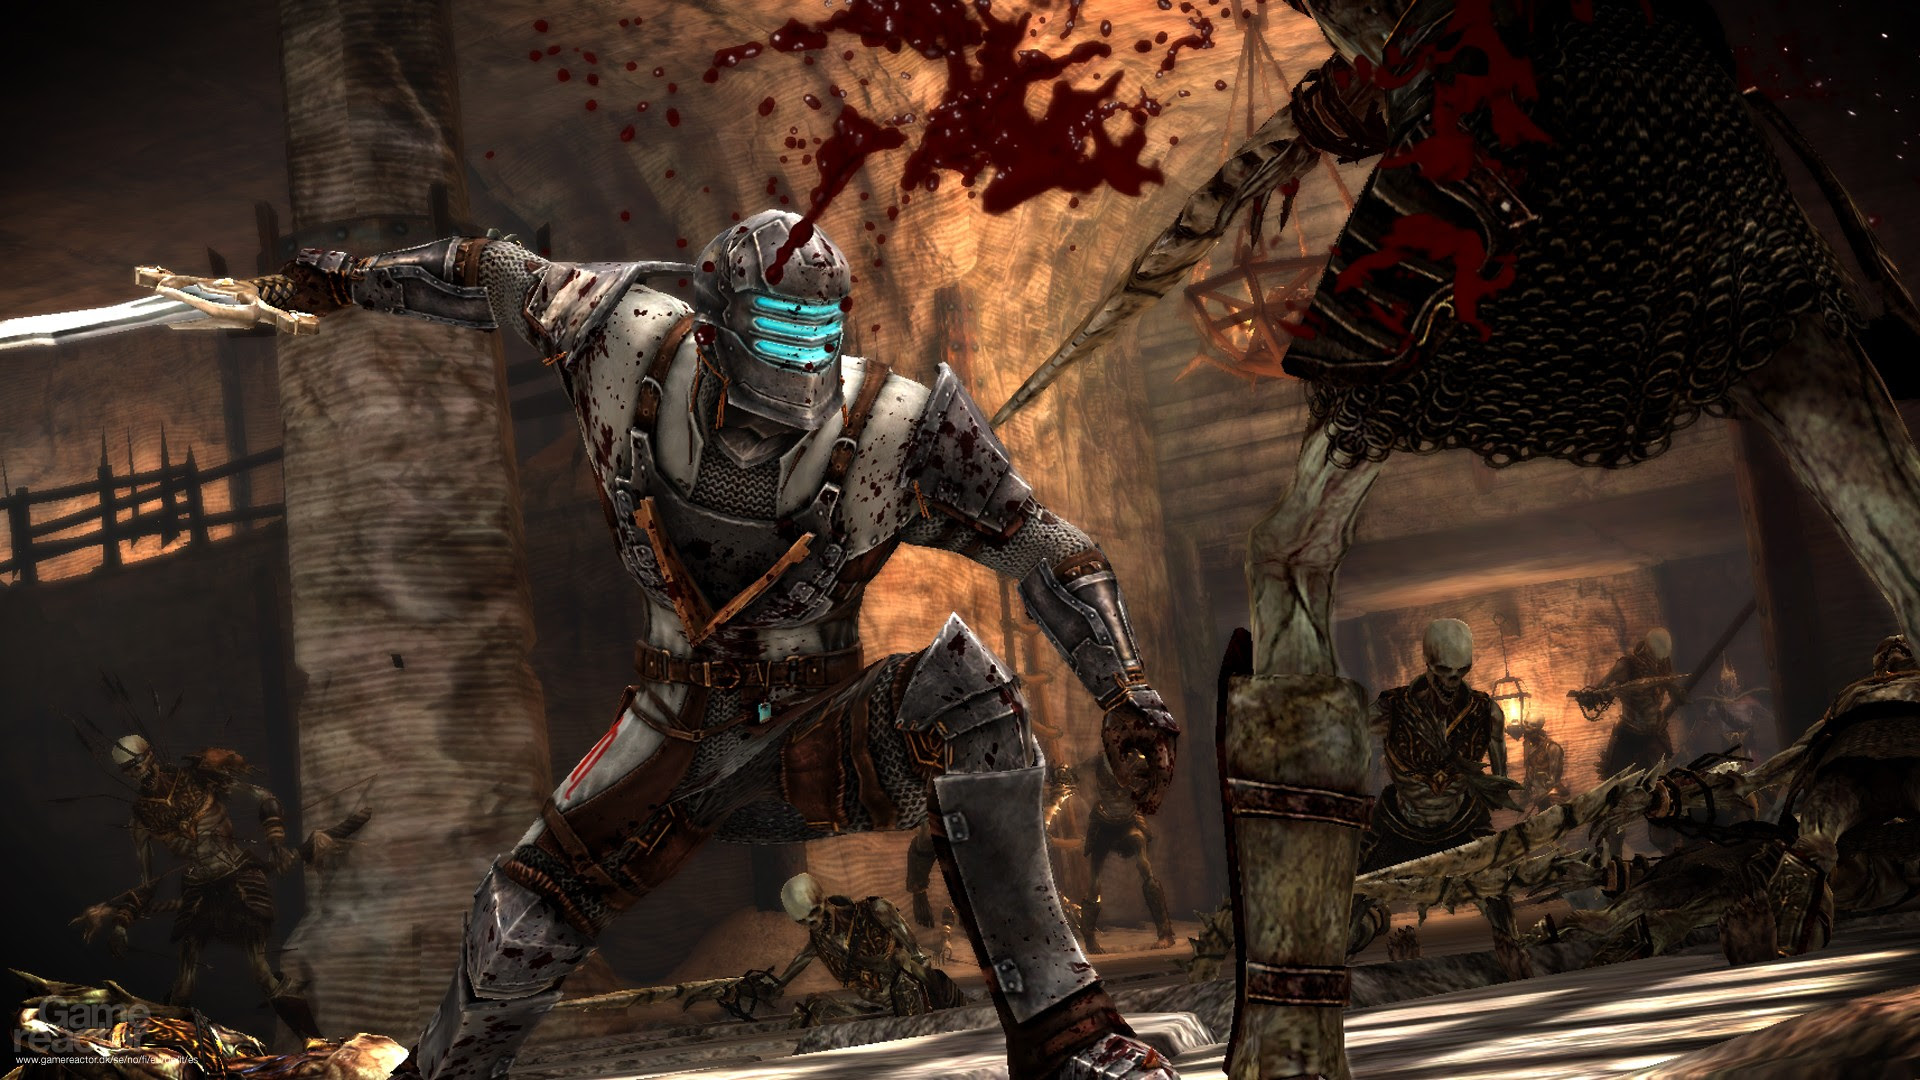 Dead Space 2 Iphone Wallpapers Dead Space 2 Images